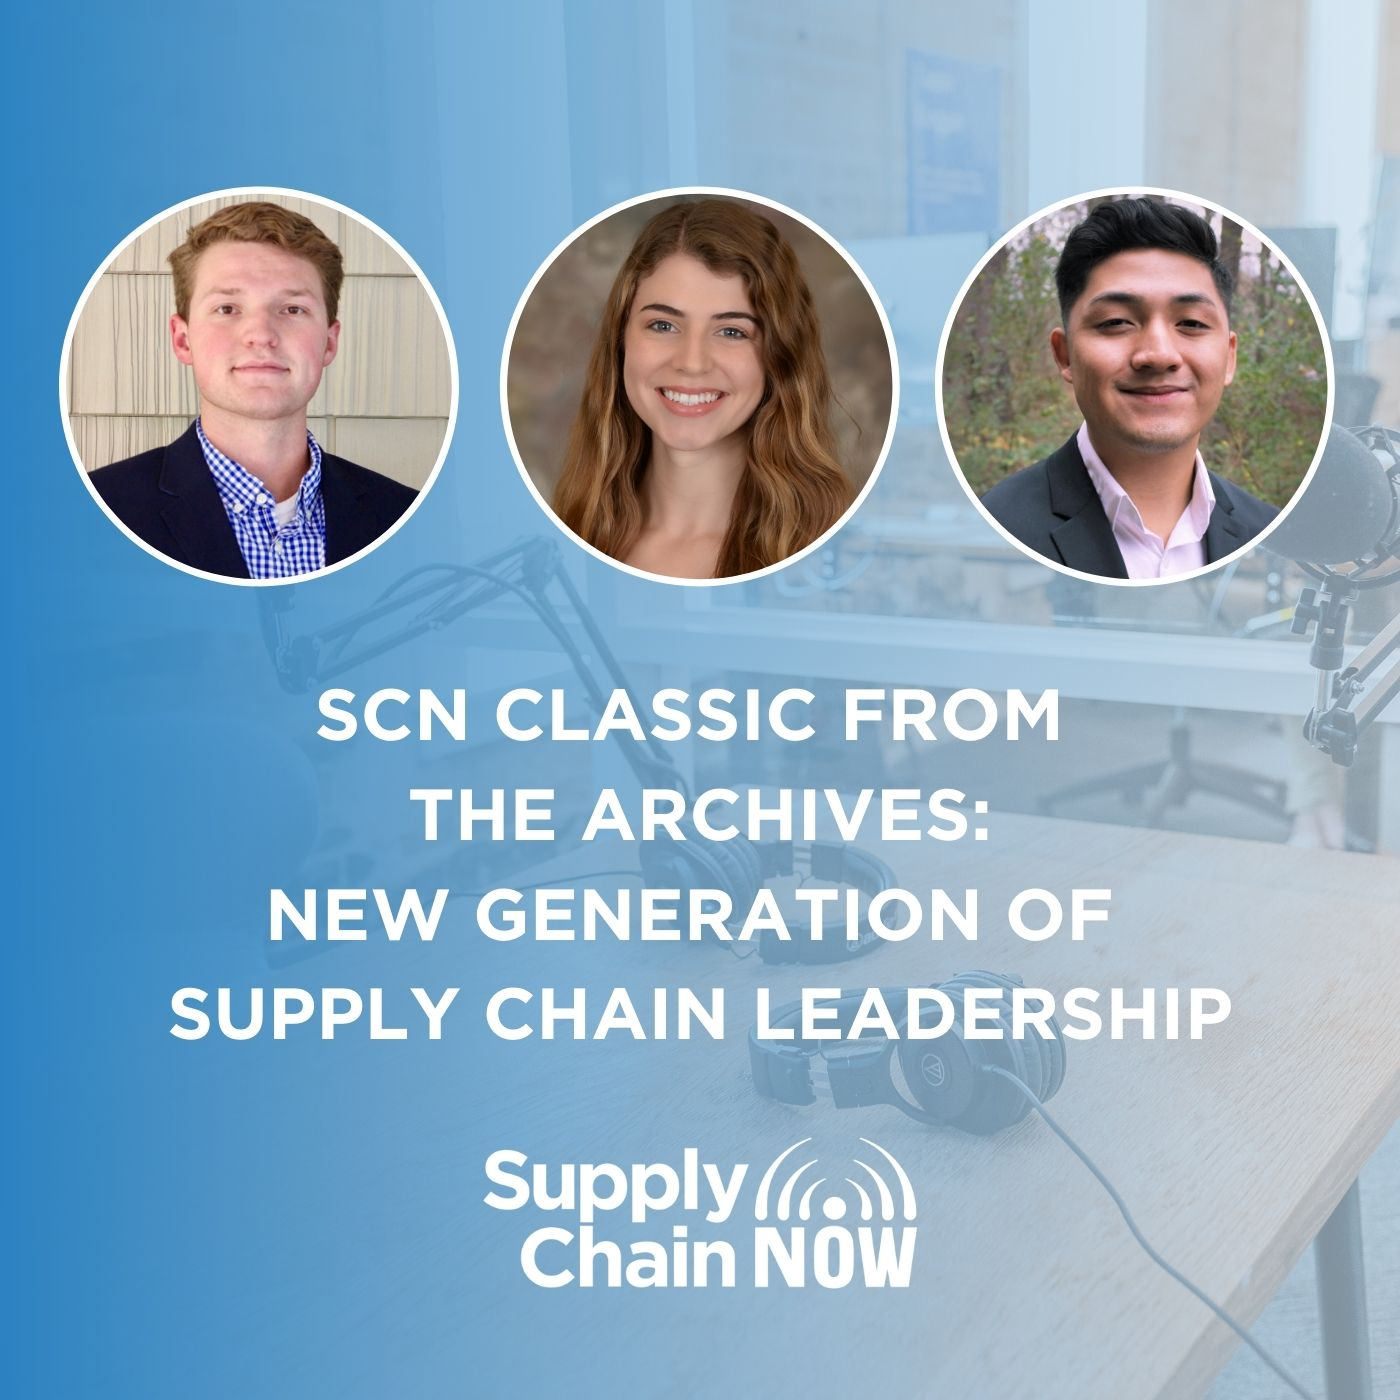 SCN Classic from the Archives: New Generation of Supply Chain Leadership